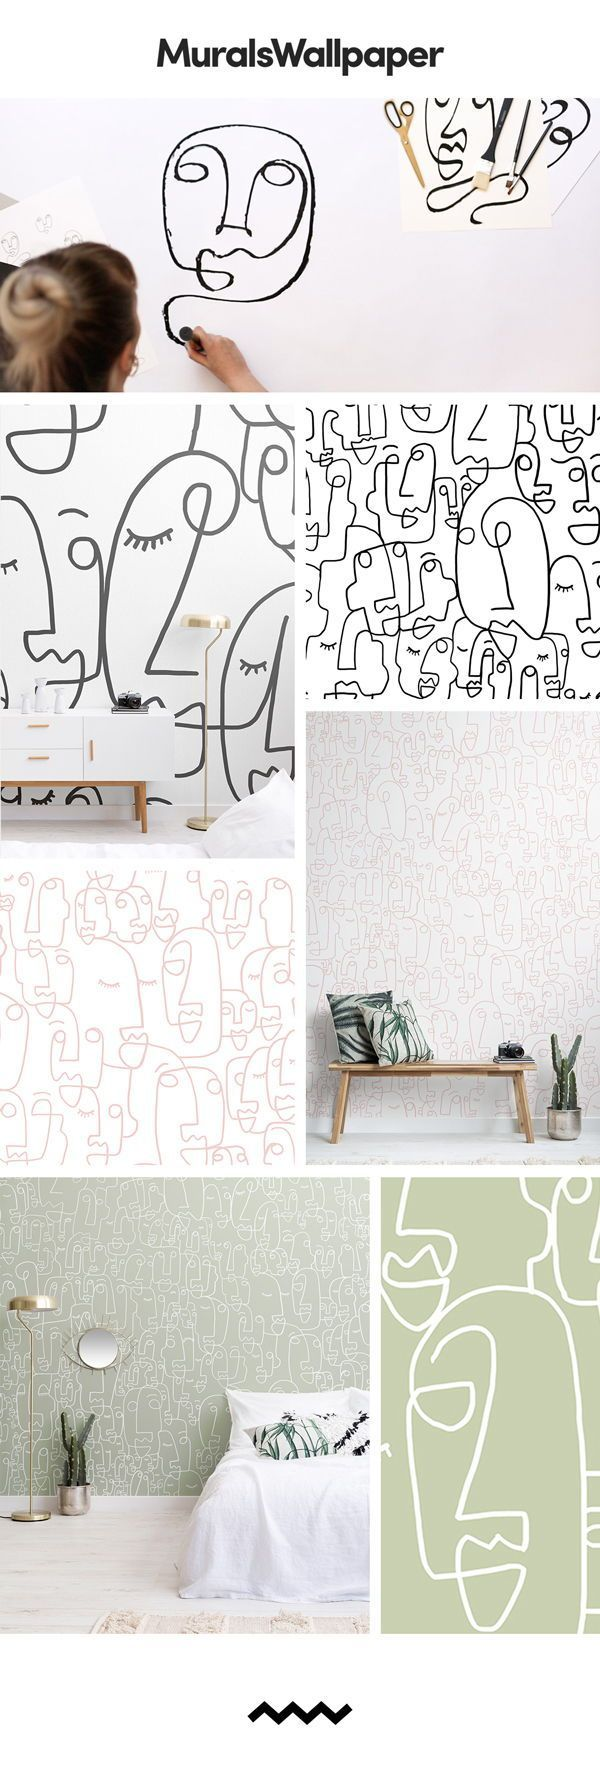 The faces within the designs are all entirely unique, capturing an array of diff...